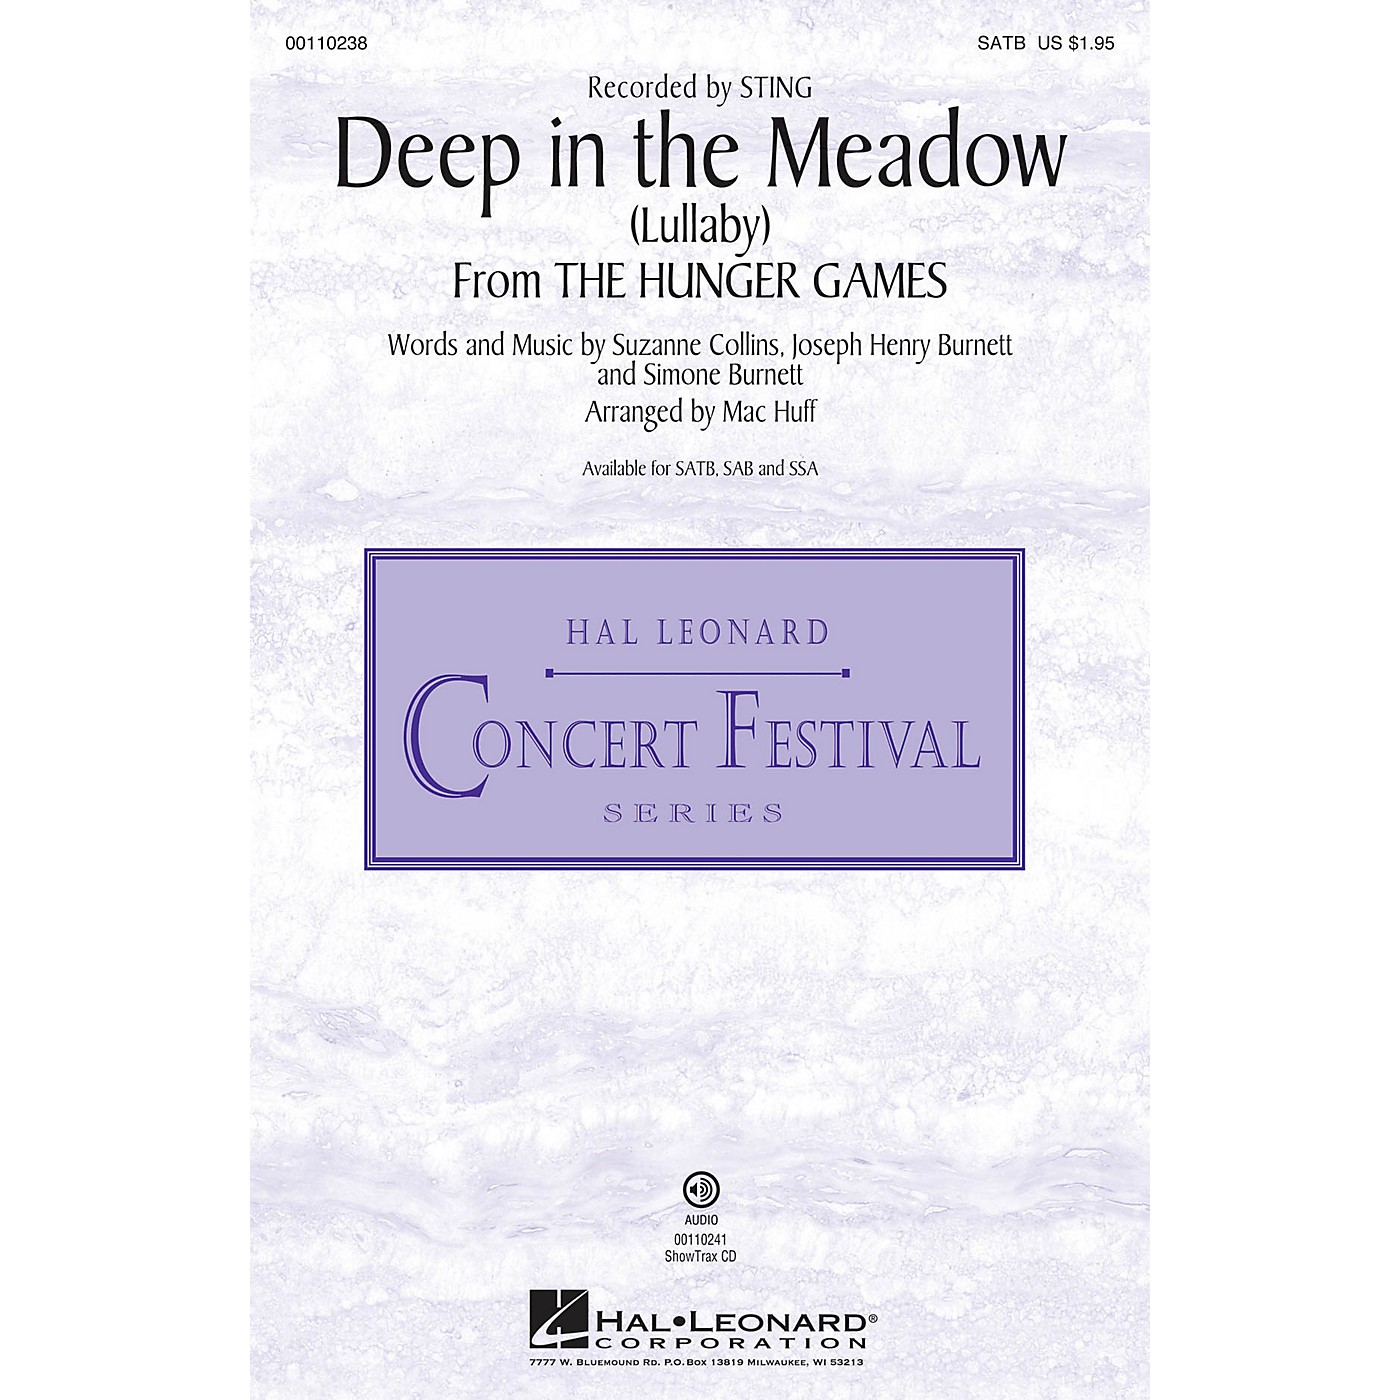 Hal Leonard Deep in the Meadow (Lullaby) (from The Hunger Games)  SATB SATB by Sting arranged by Mac Huff thumbnail